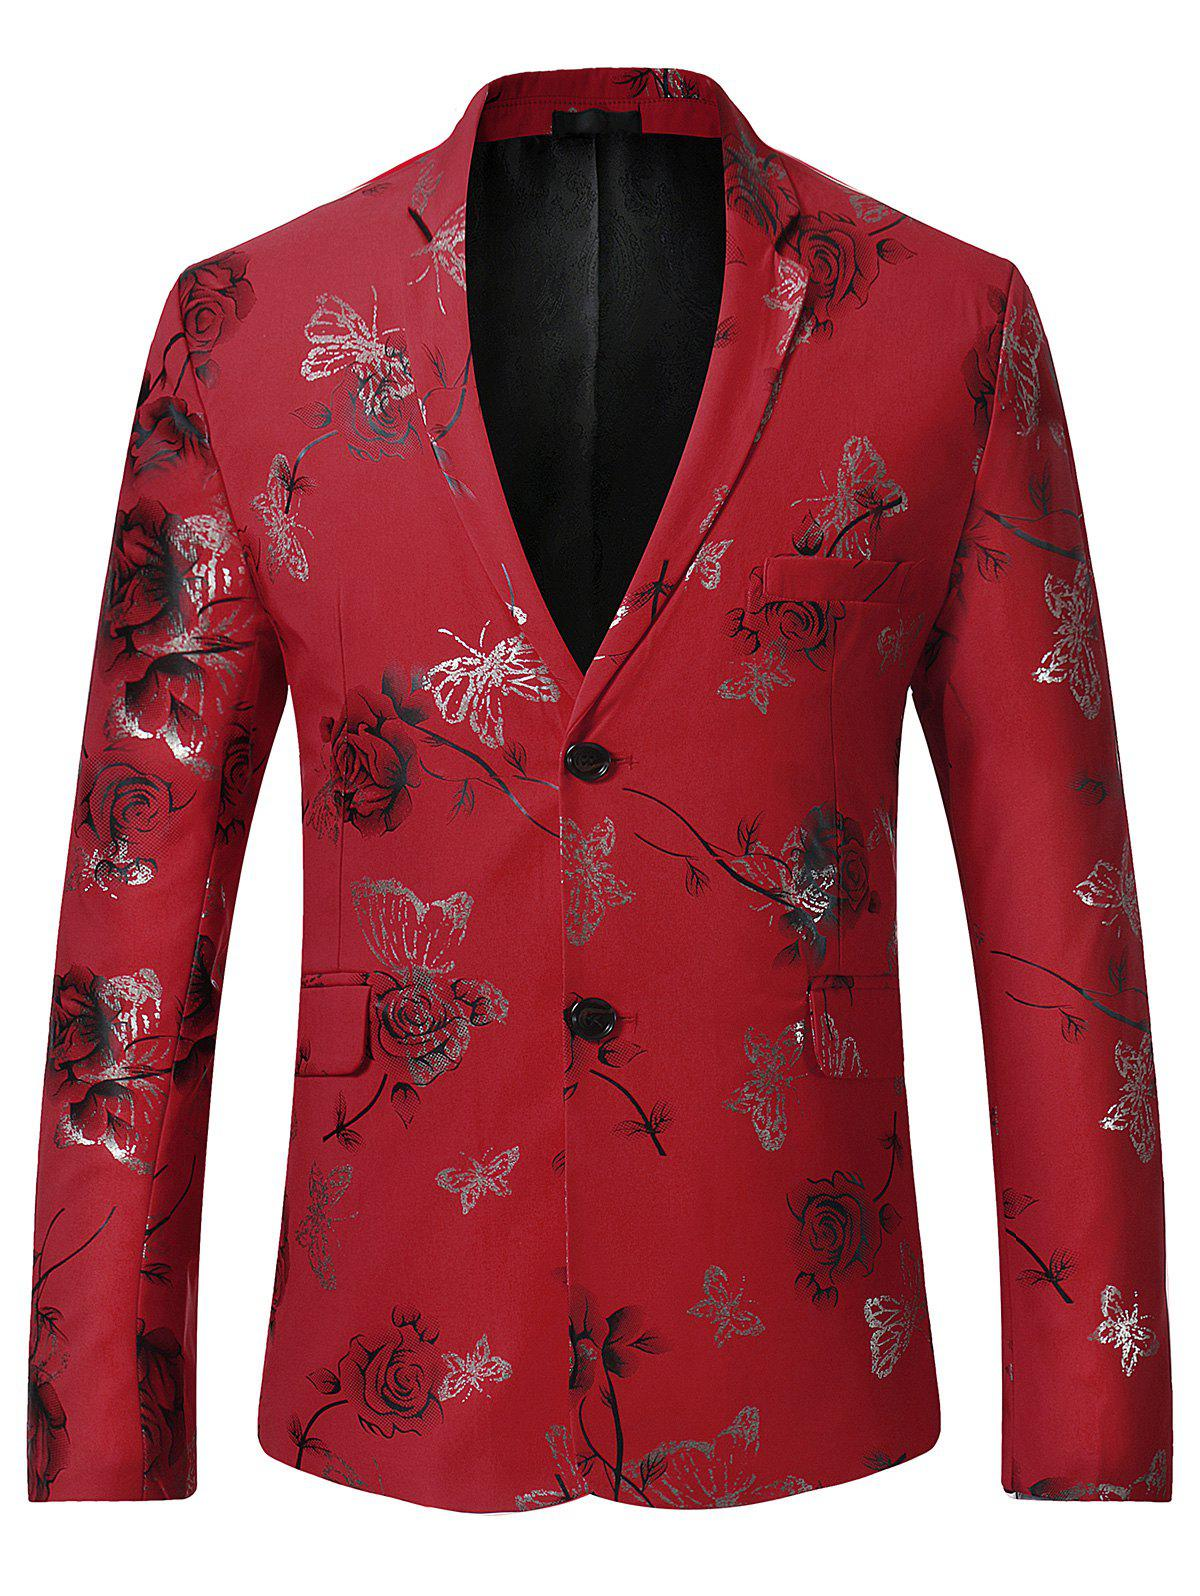 Lapel Metallic Butterfly Floral Printed Blazer - RED M